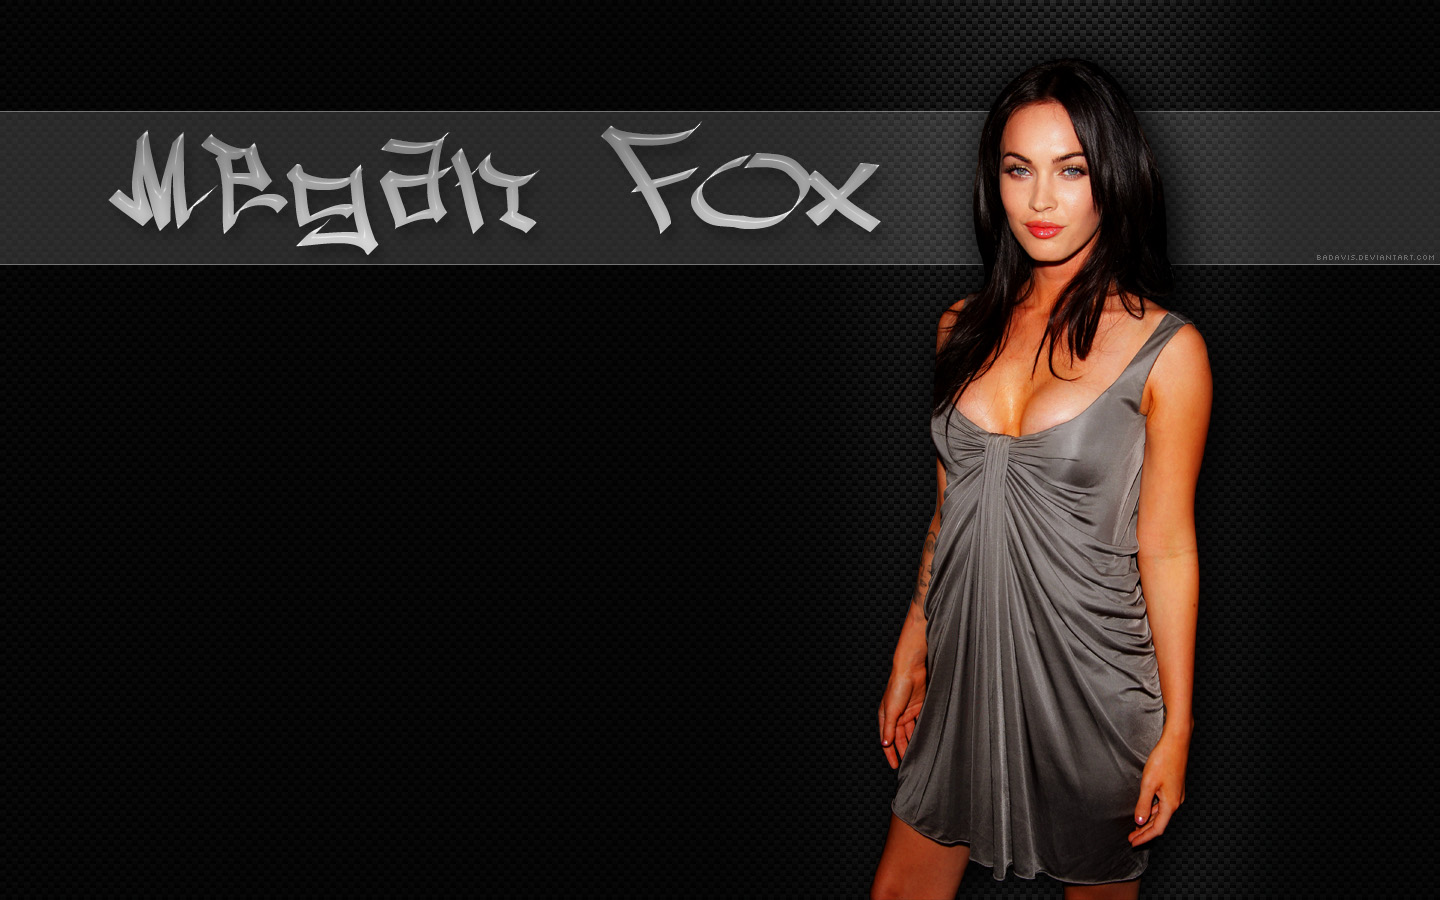 megan fox wallpaper widescreen hd megan fox wallpaper widescreen hd 1440x900